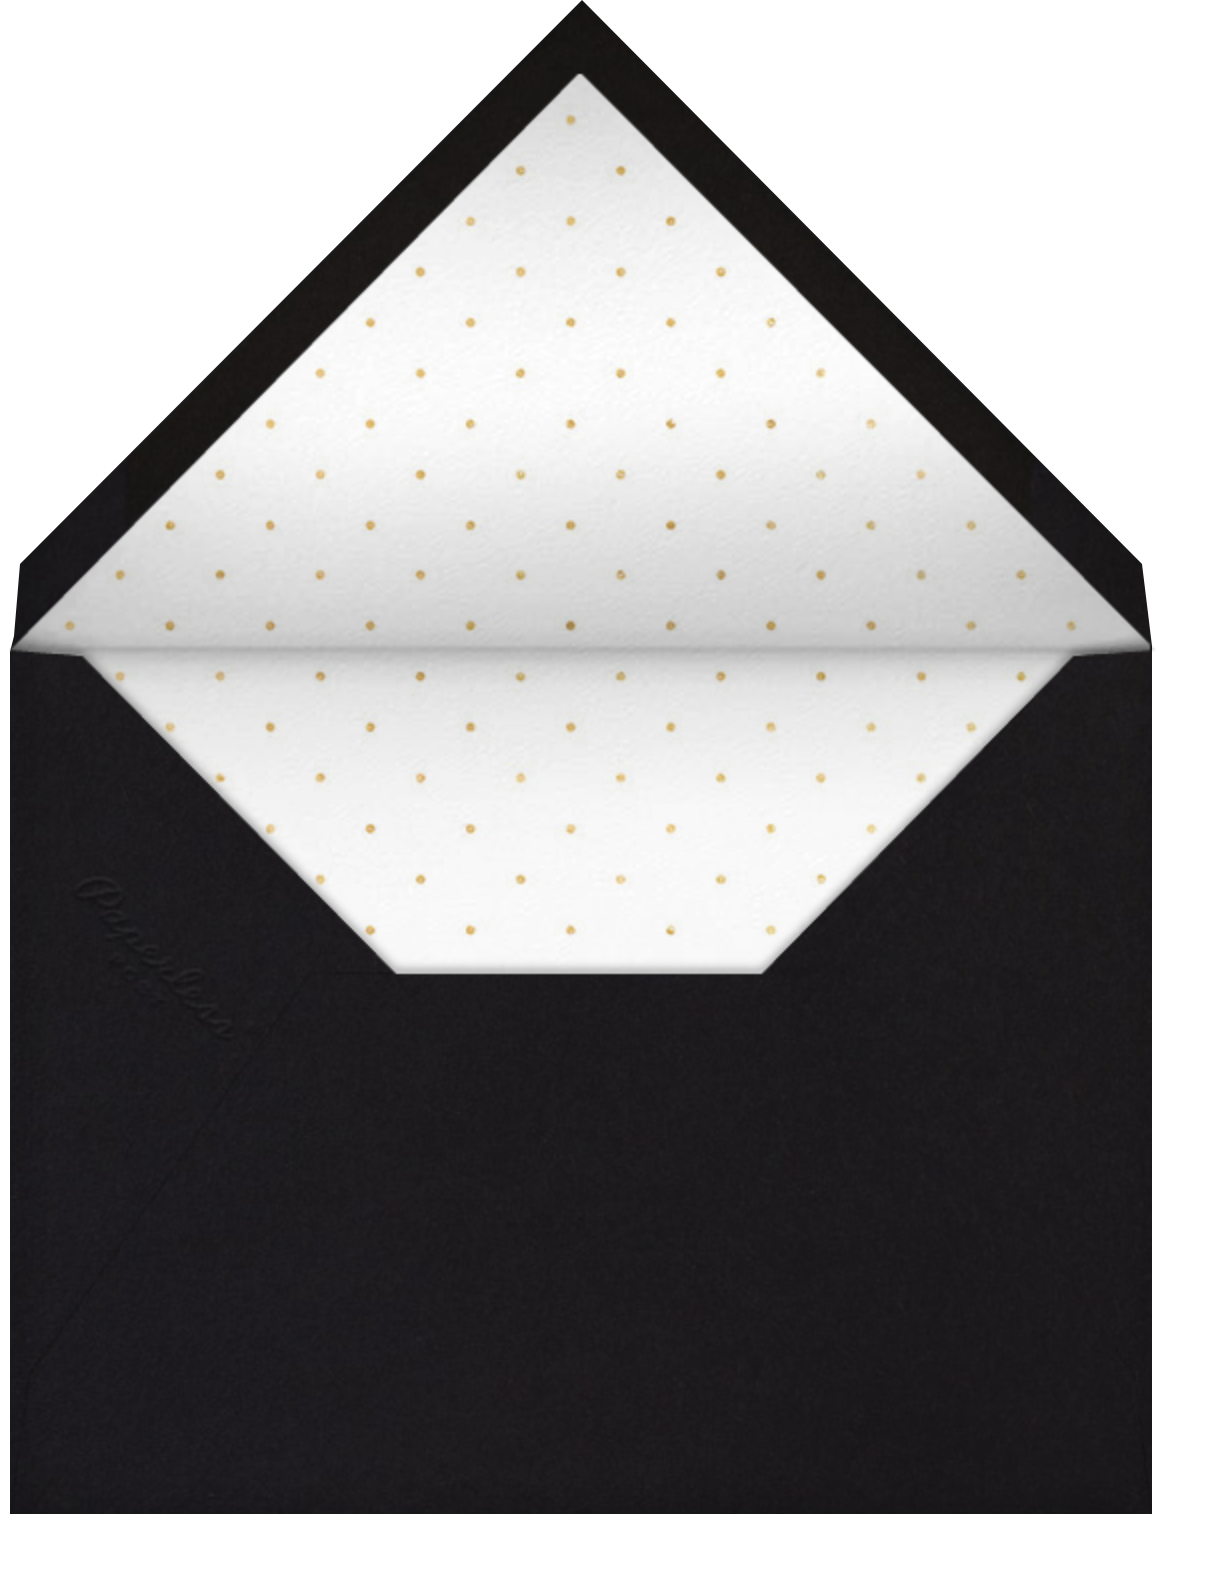 Lucky Stars - Paper + Cup - Adult birthday - envelope back